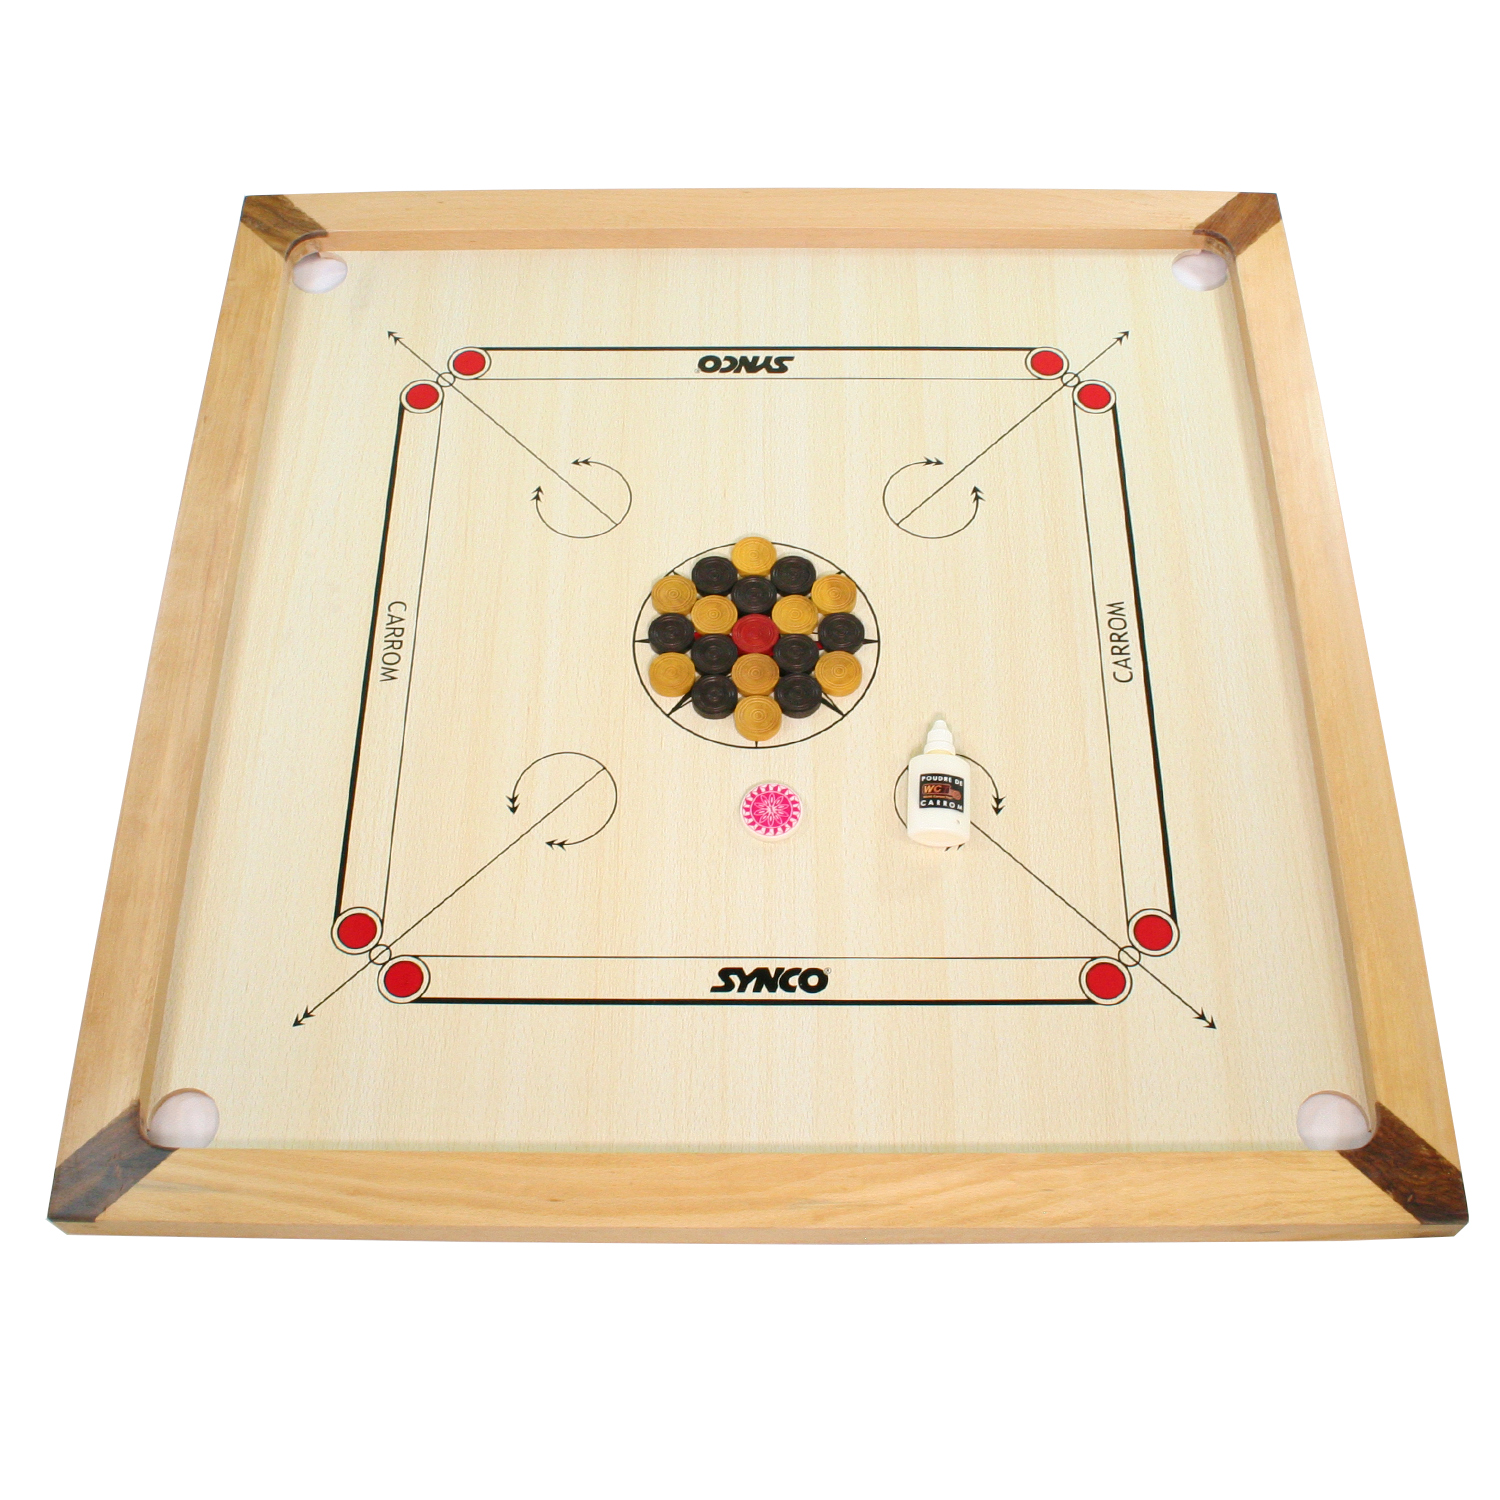 Synco Mango66 Carrom Board